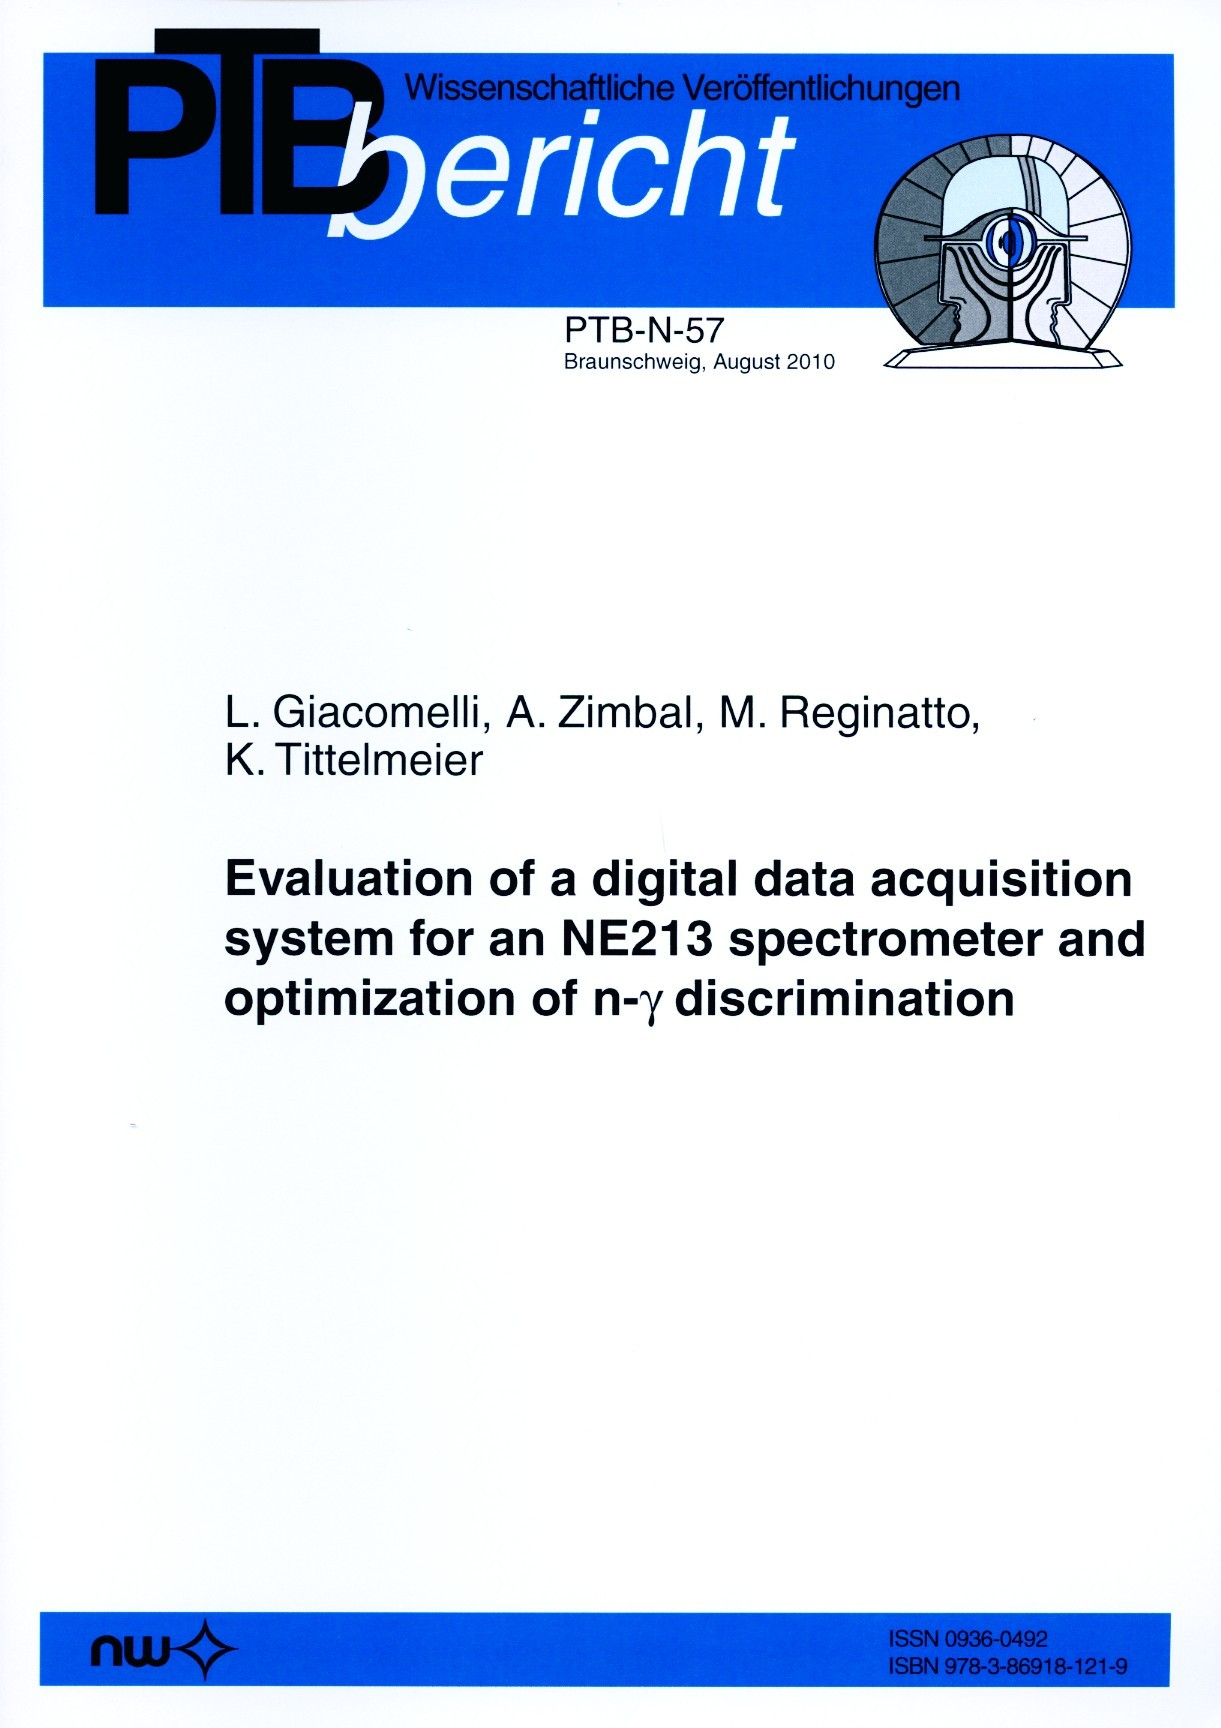 Evaluation of a digital data acquisition system for an NE213 spectrometer and optimization of n-y discrimination